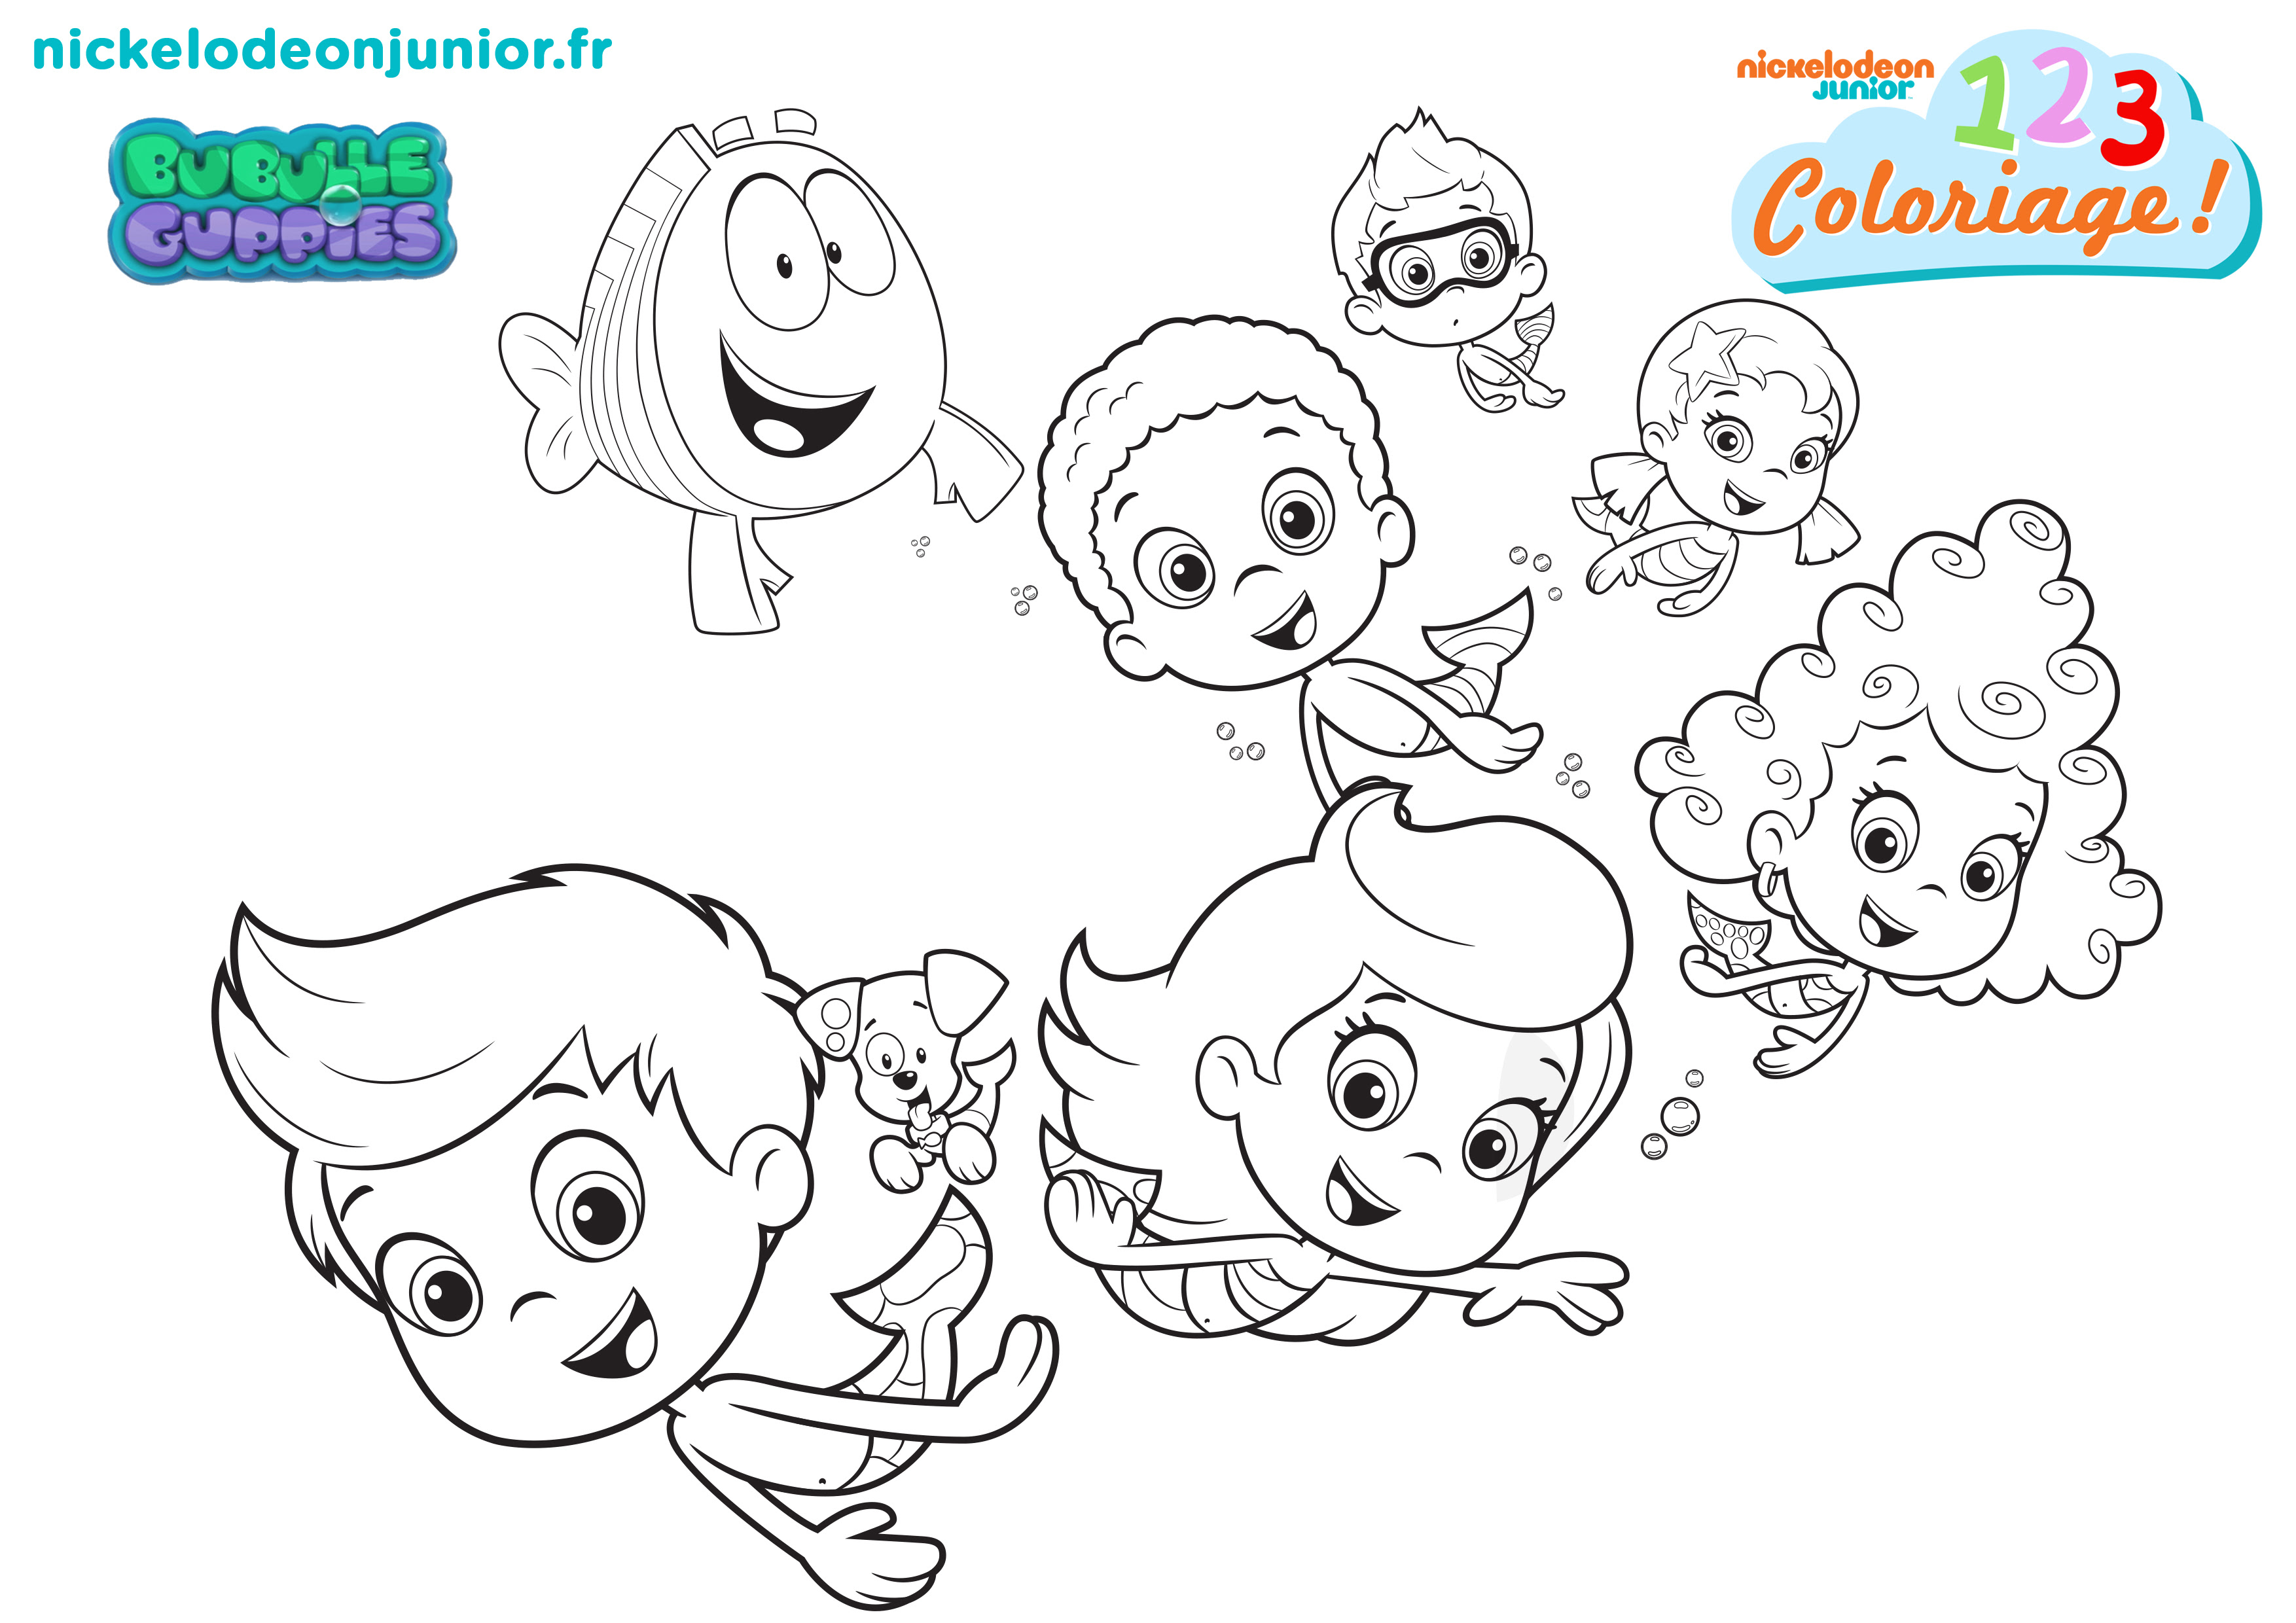 Coloriage Bubulle Guppies